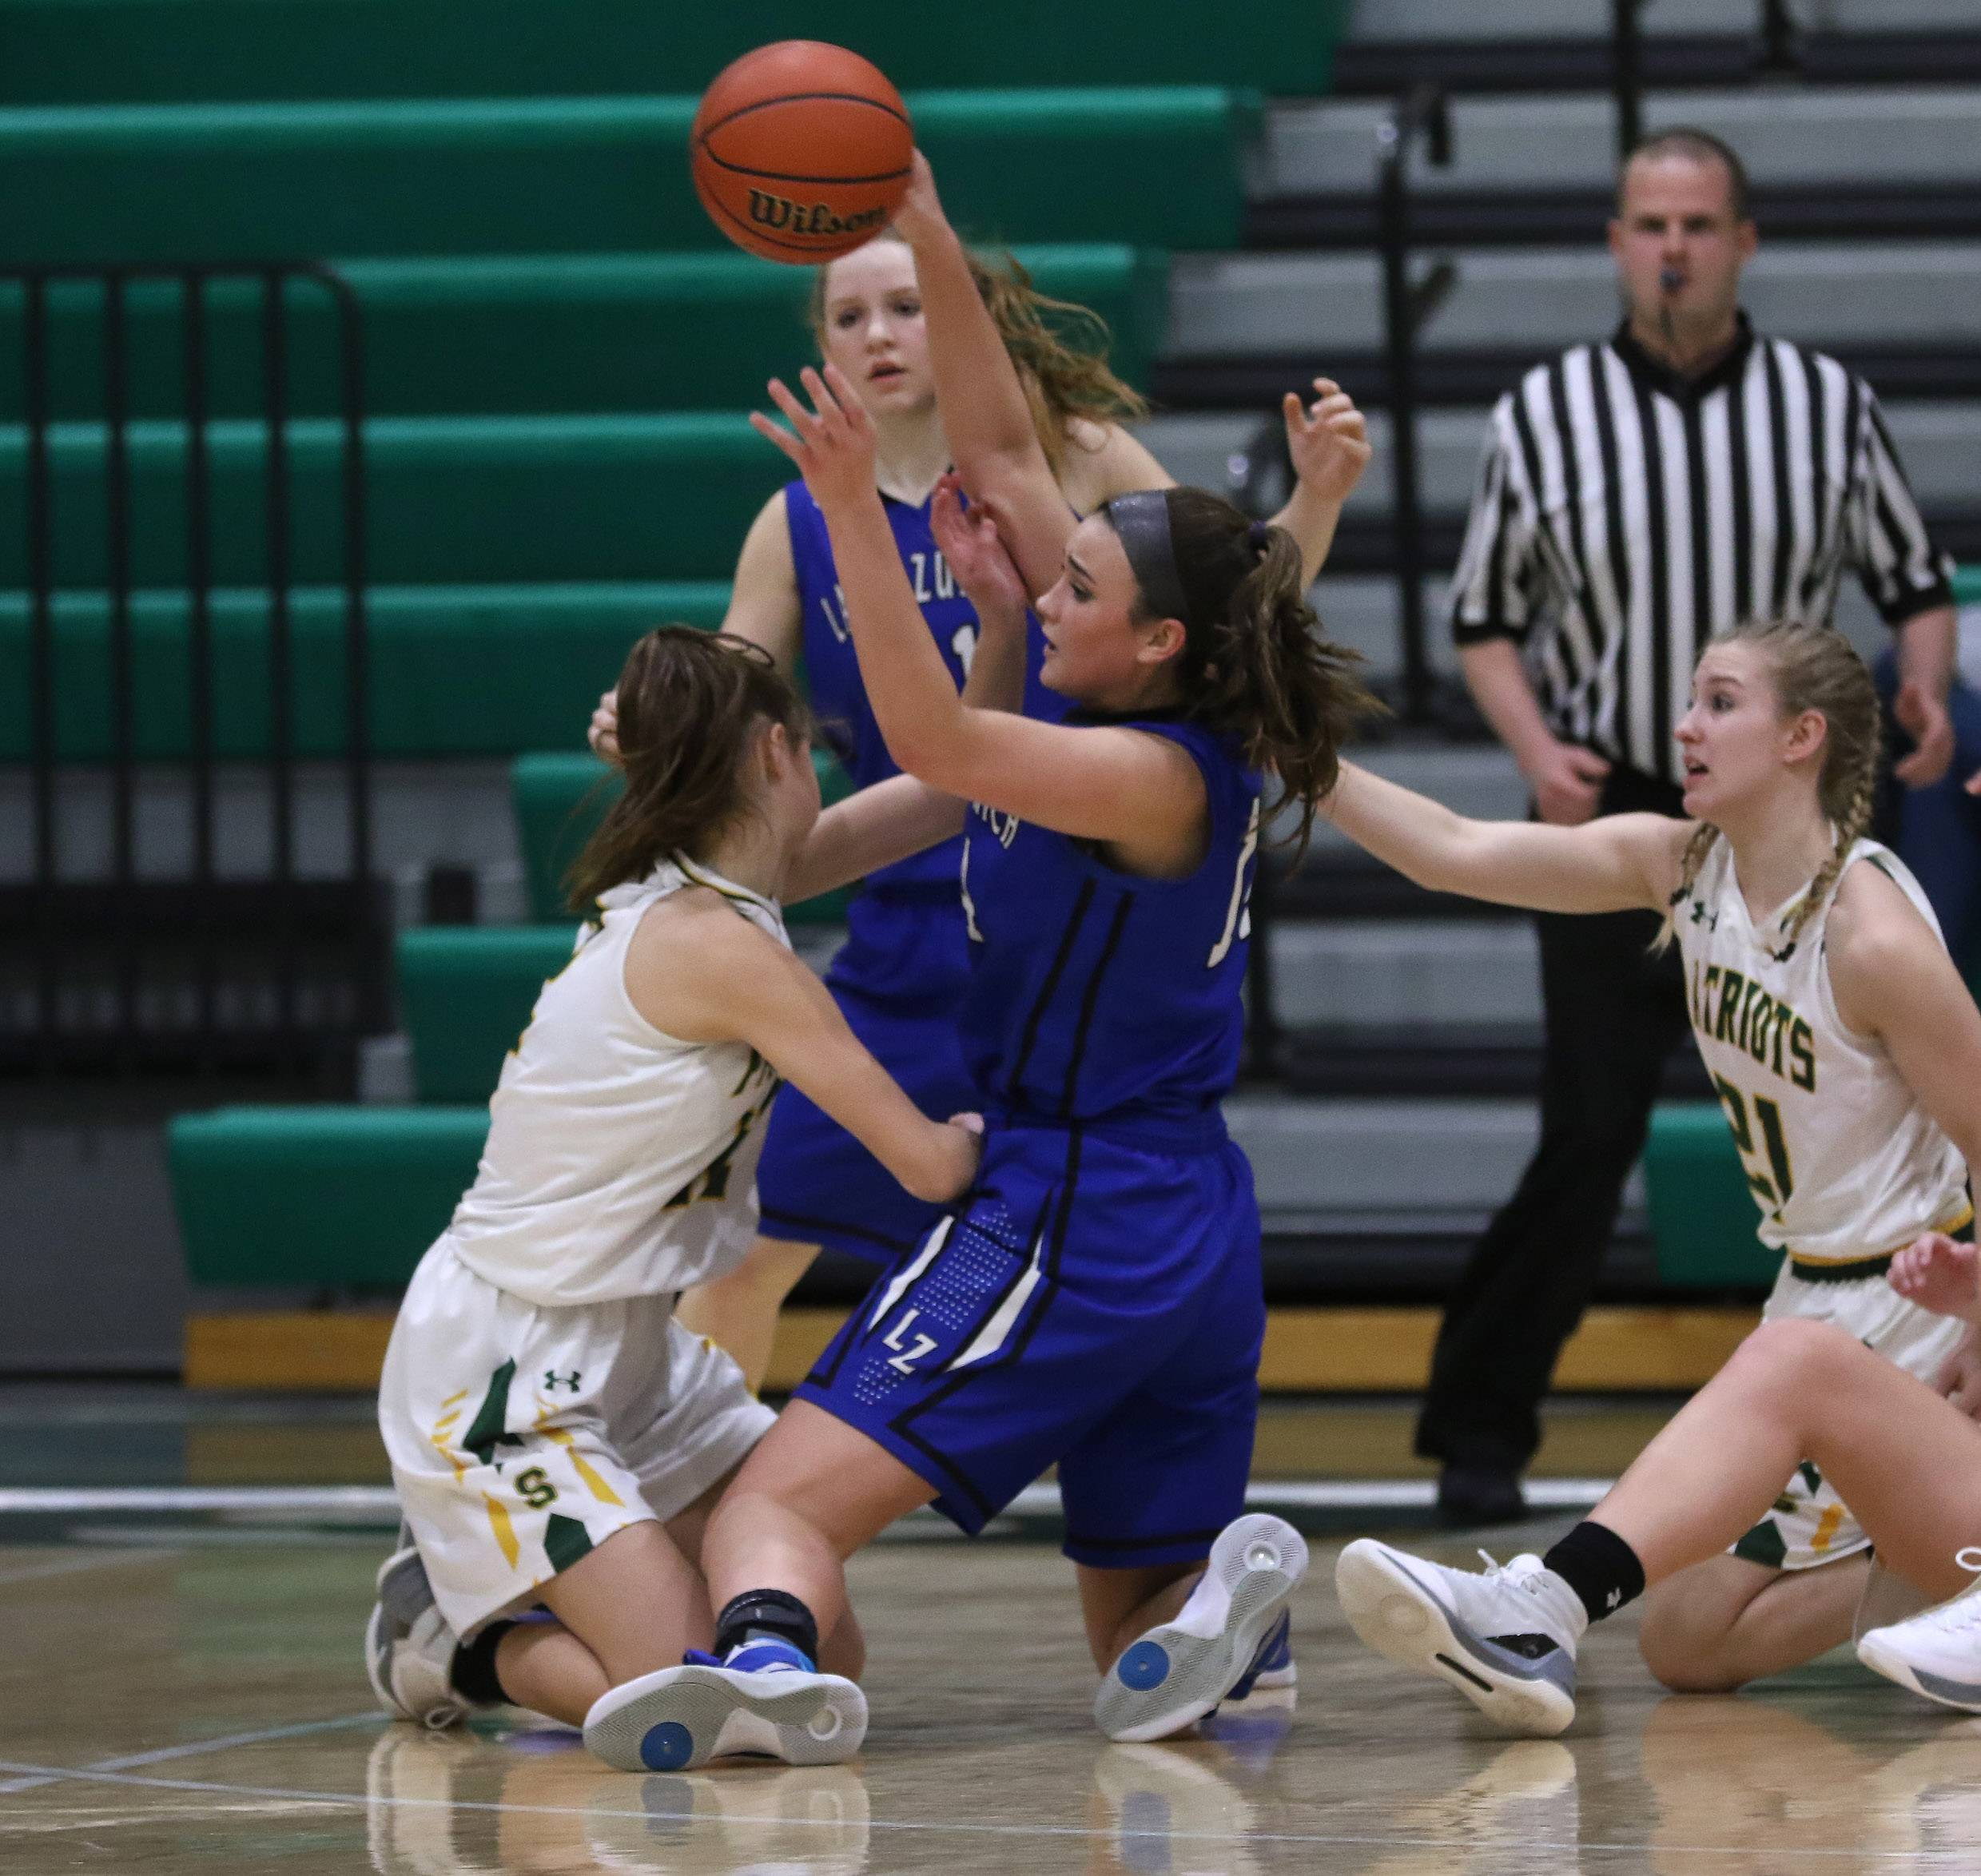 Lake Zurich guard McKenna Zobel tries to throw the ball from her knees past Stevenson players Krissy Hill, left, and Julia Osuch on Thursday at Stevenson.